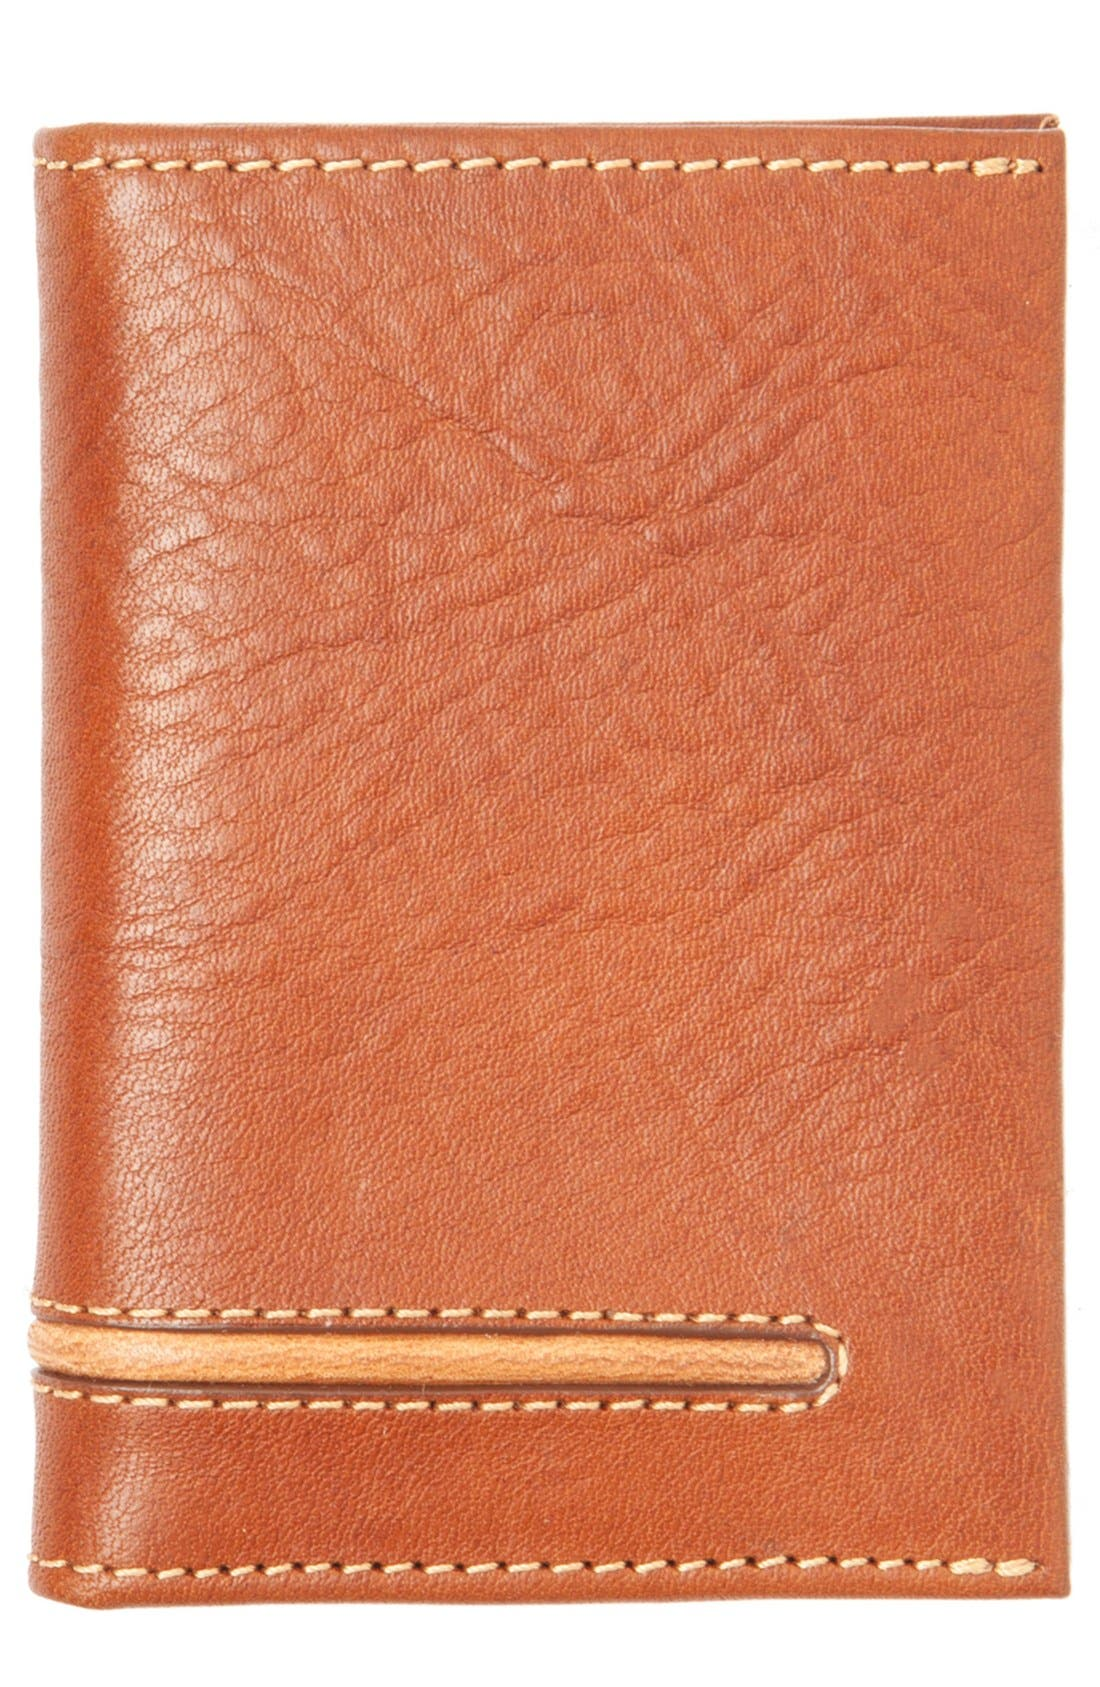 Alternate Image 1 Selected - Tommy Bahama Leather Money Clip Card Case